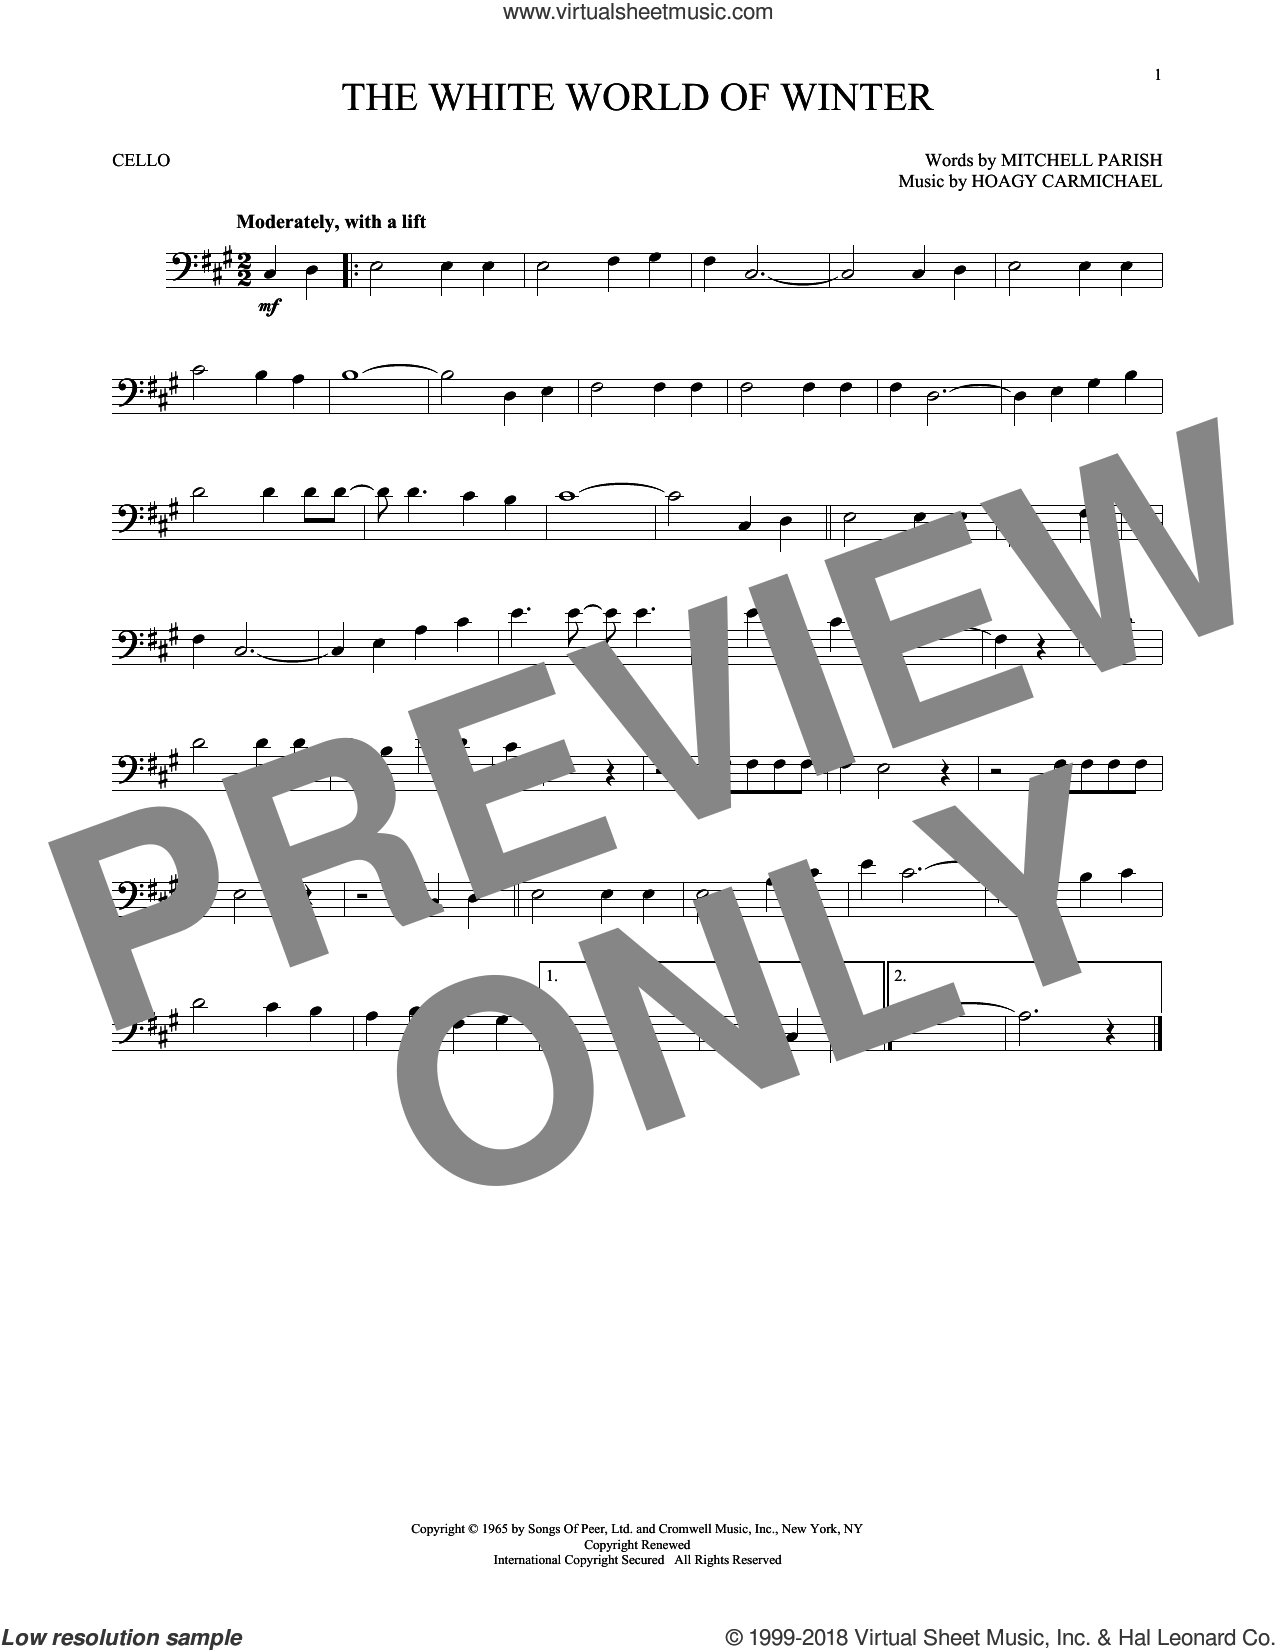 The White World Of Winter sheet music for cello solo by Hoagy Carmichael and Mitchell Parish, intermediate skill level